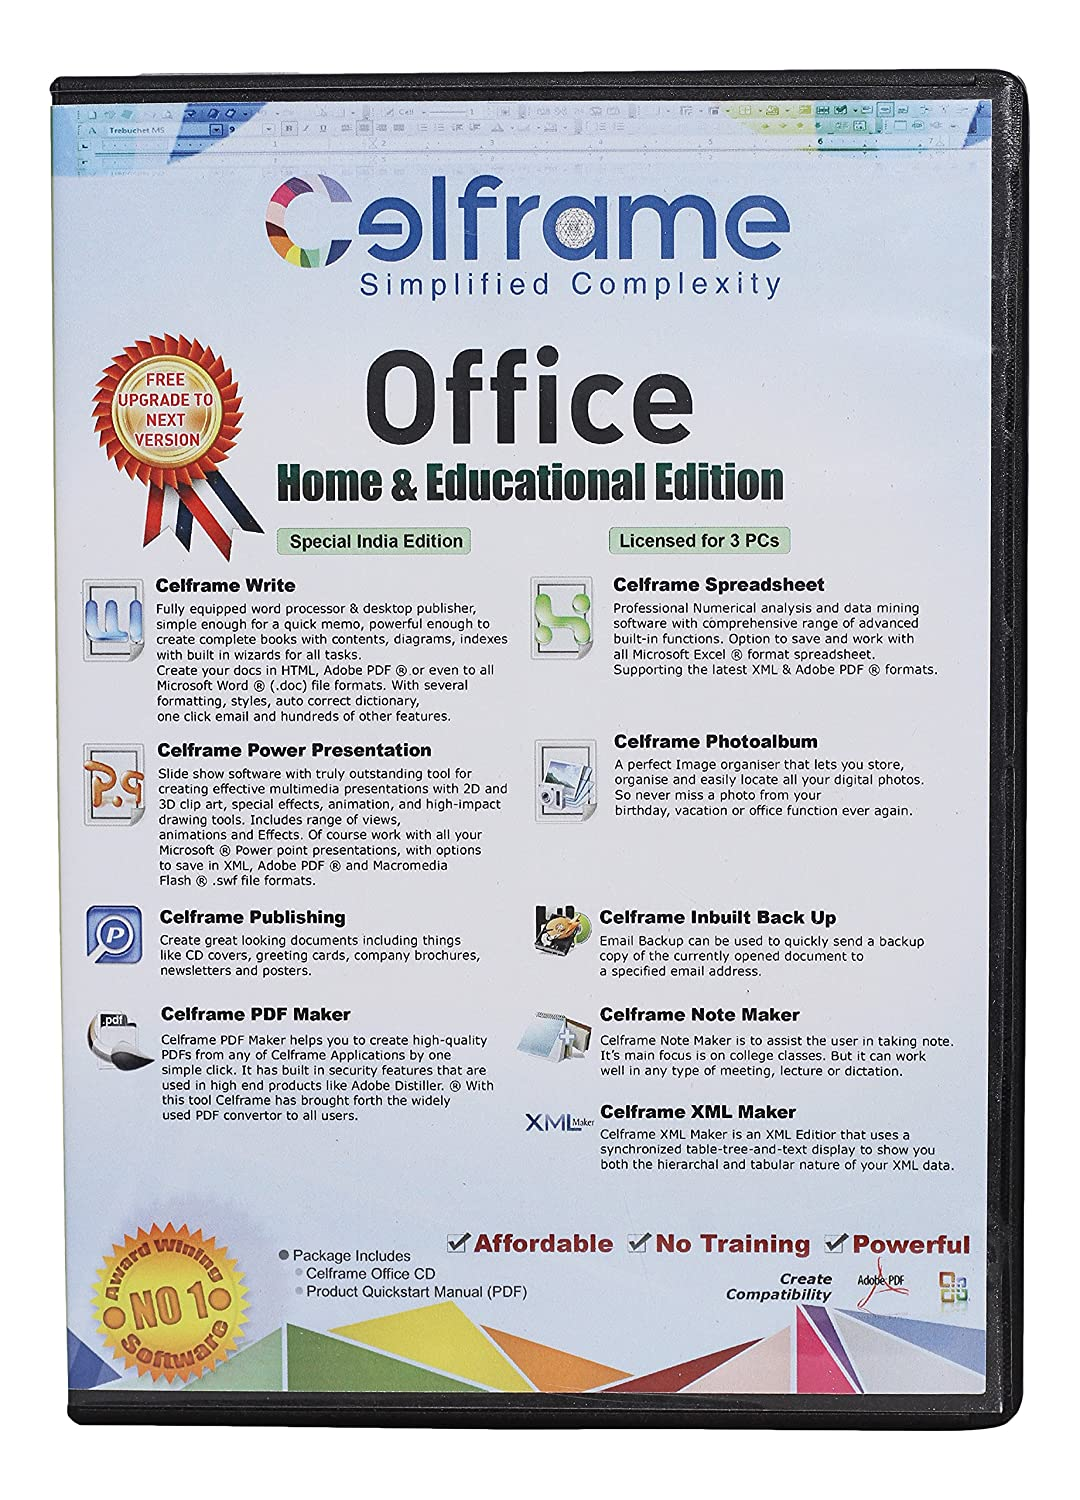 Celframe Office Home and Educational CD, 3 PC (COH3ENRB6